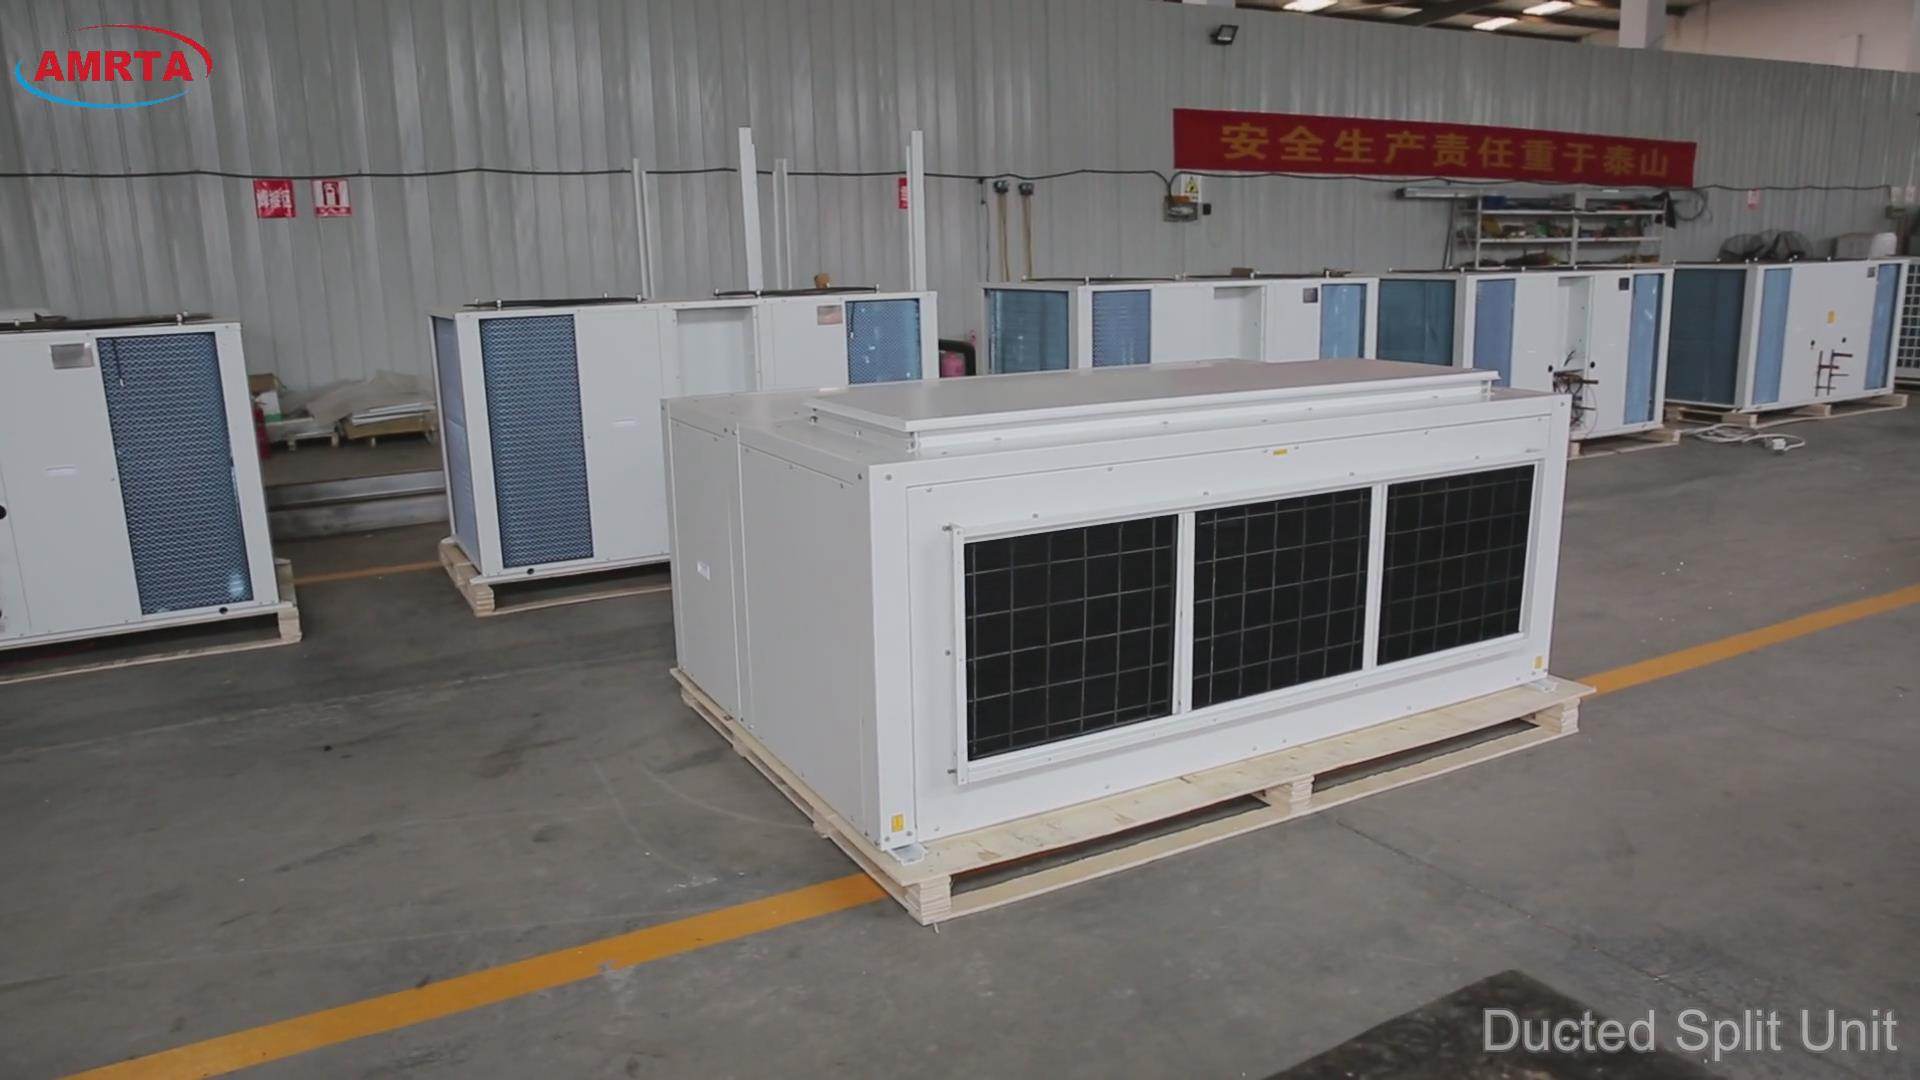 Indoor Unit of 72kW Ducted Split Unit